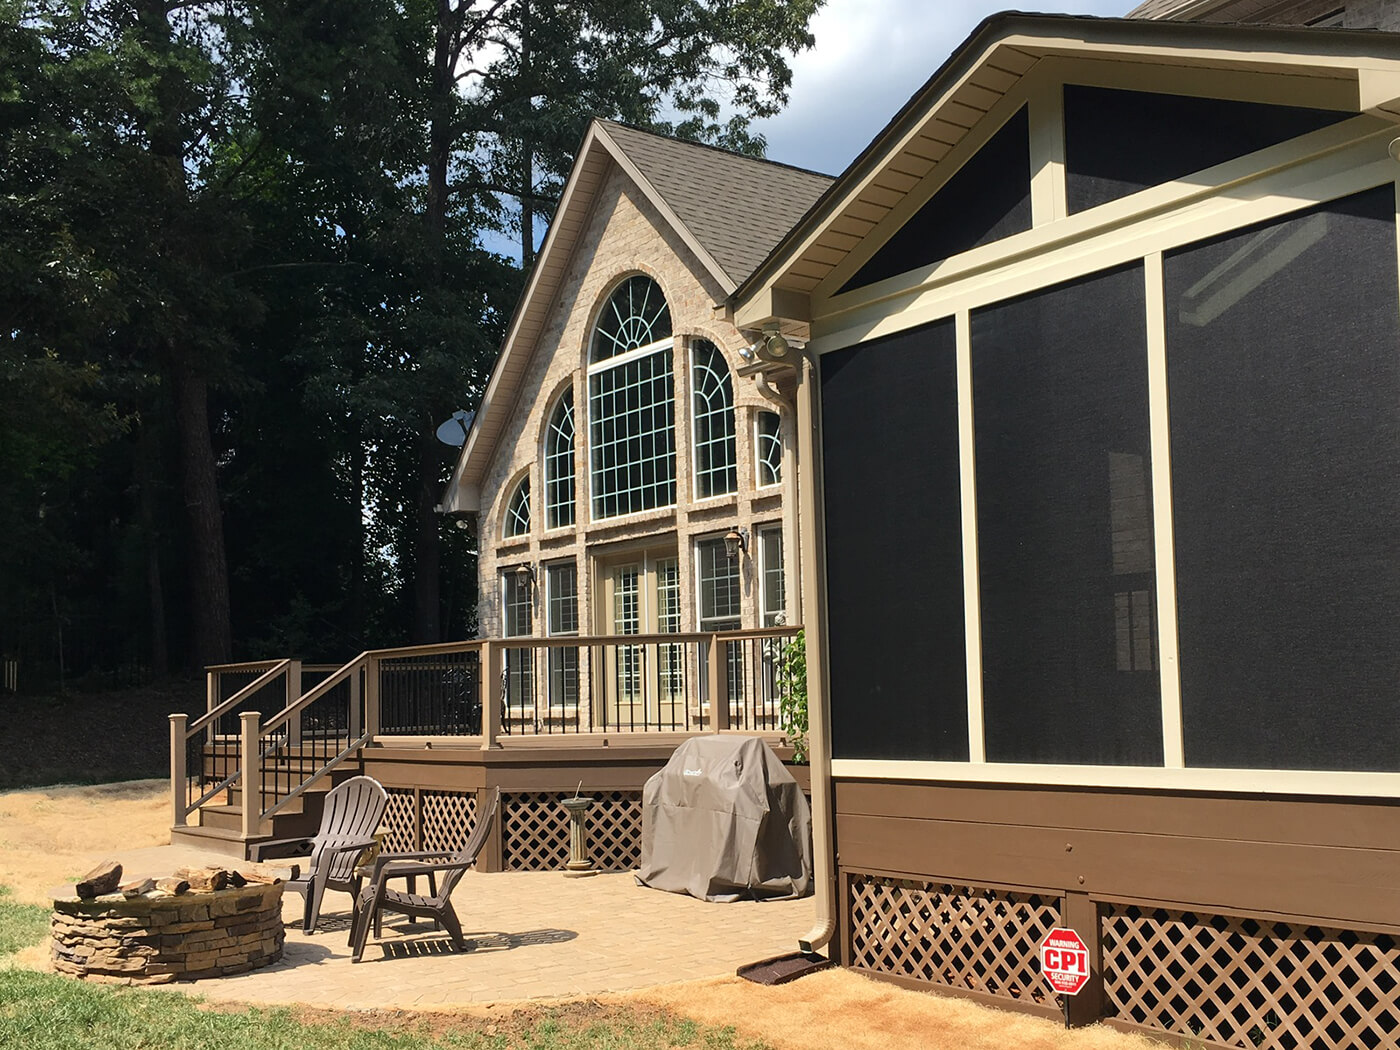 screened porch and deck with fire pit